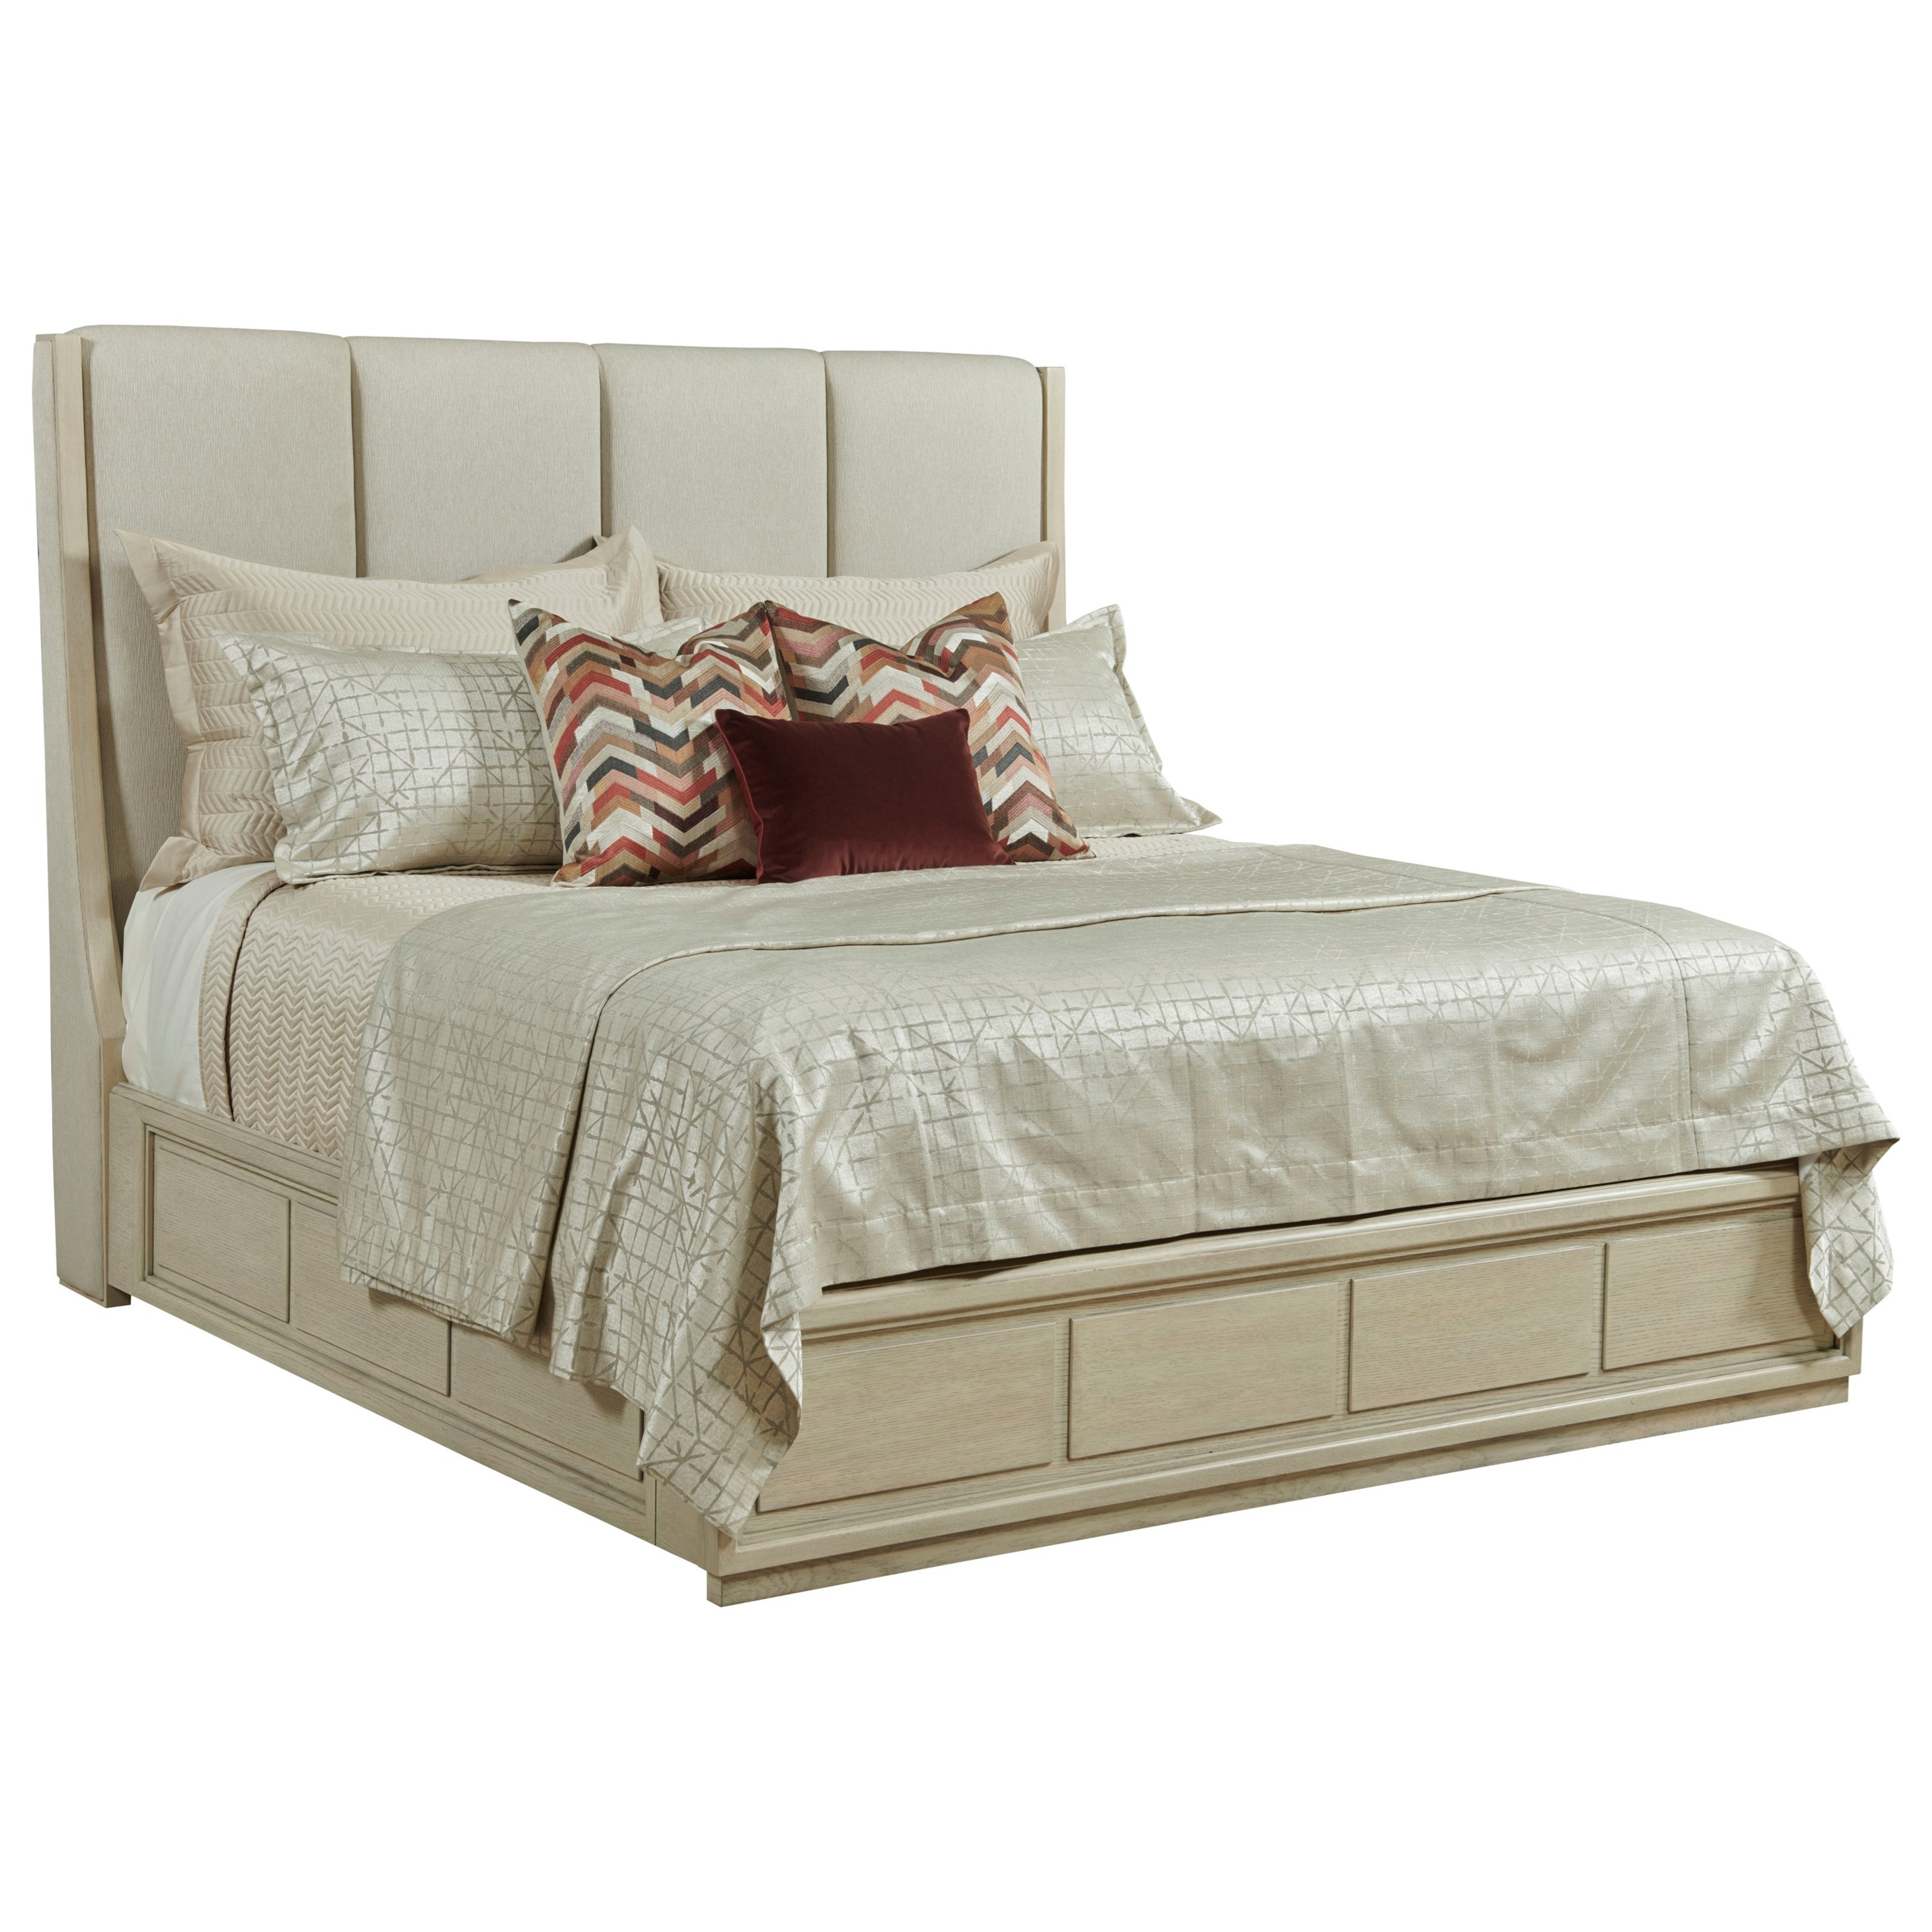 Lenox King Upholstered Bed by American Drew at Stoney Creek Furniture